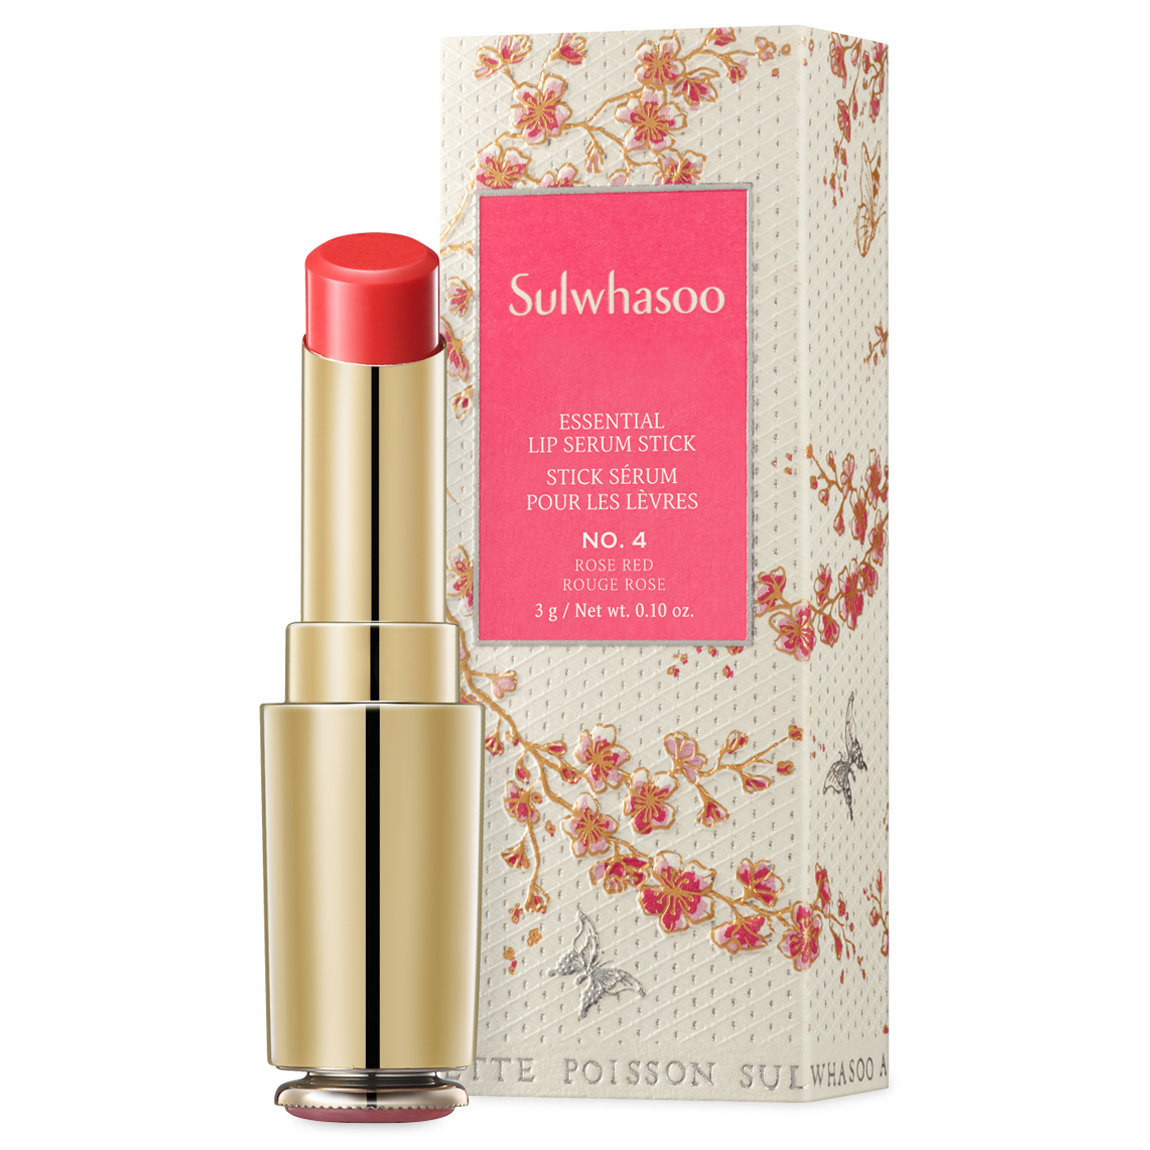 Sulwhasoo Limited Edition Essential Lip Serum Stick No. 4